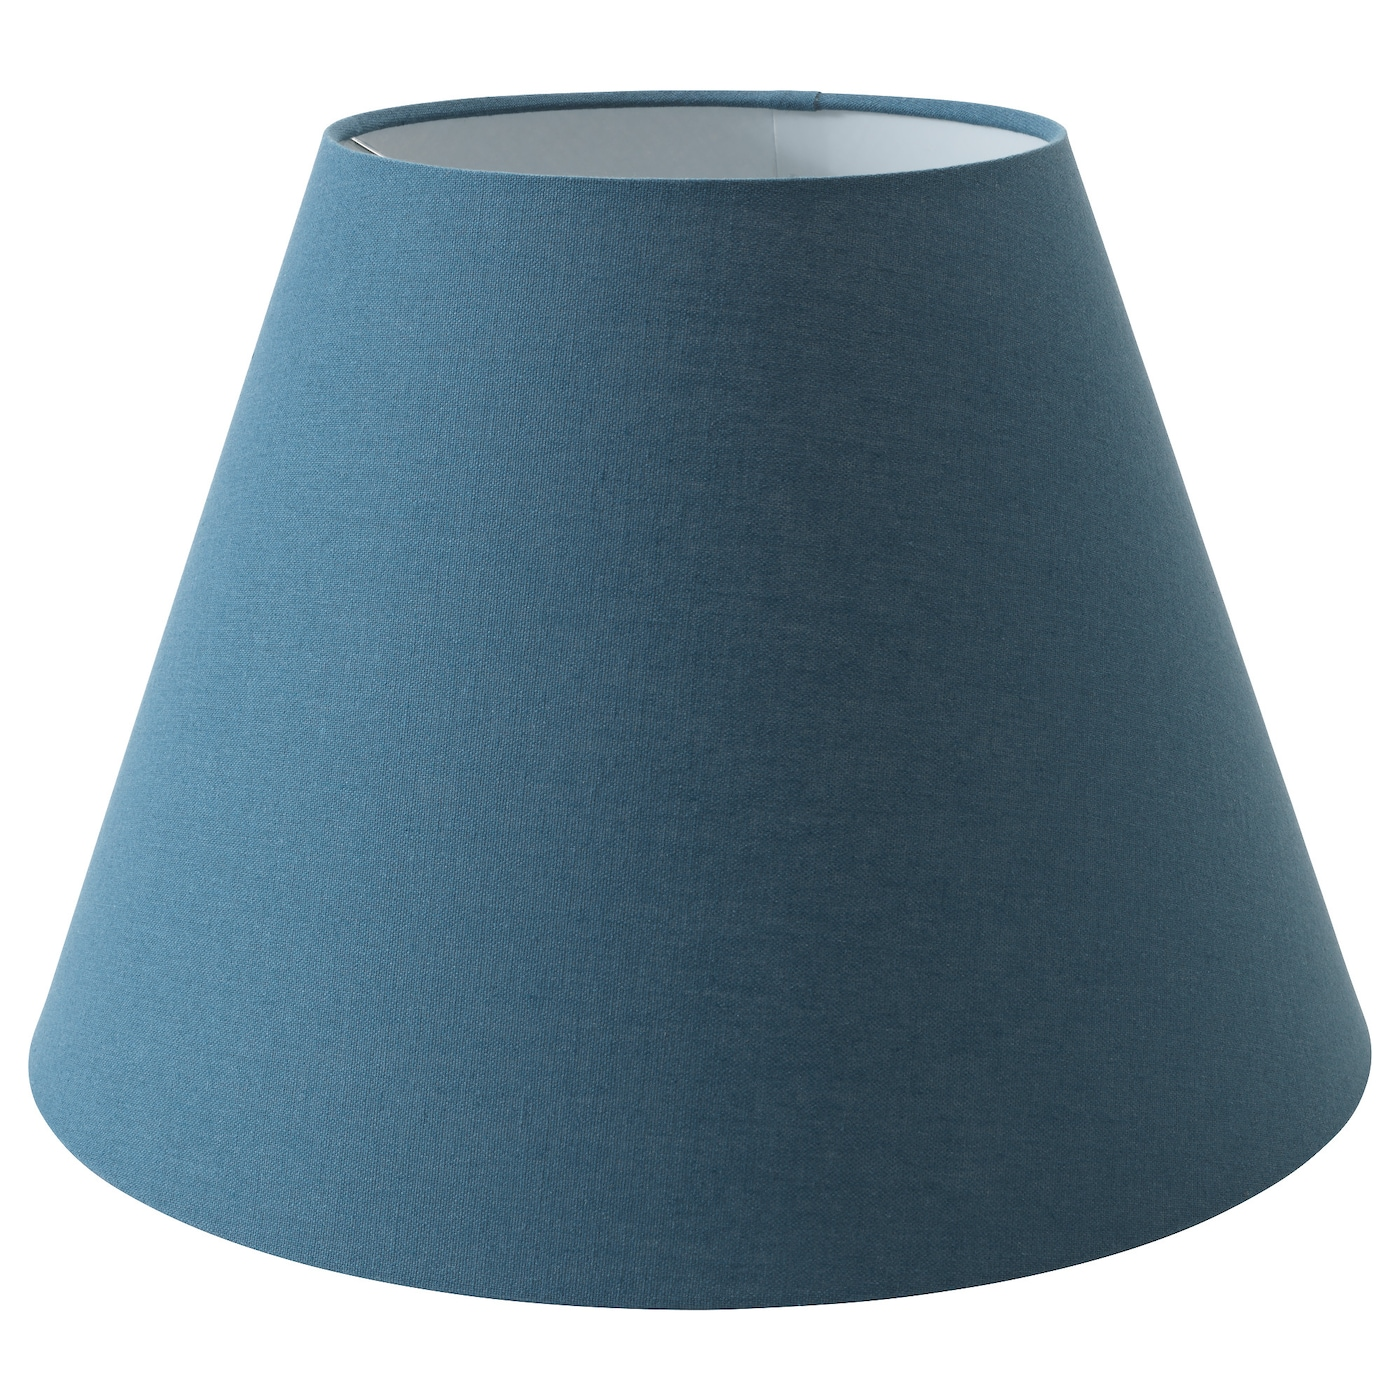 OLLSTA Lamp shade Blue 42 cm - IKEA